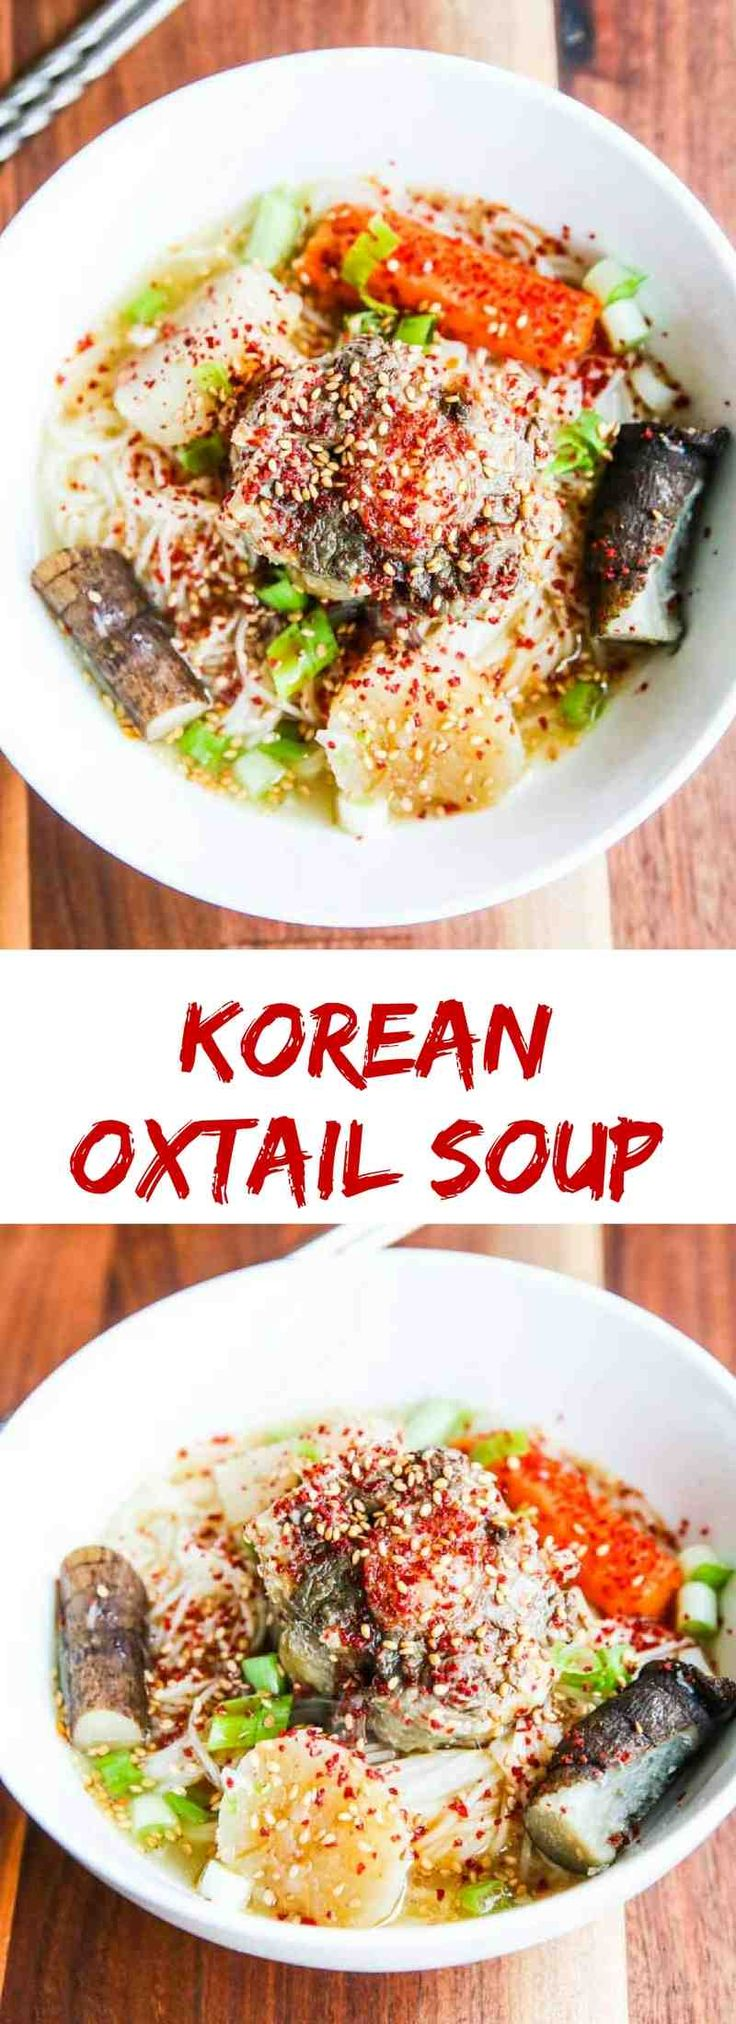 Korean Oxtail Soup - an Asian bone broth served with a chili sesame scallion topping.